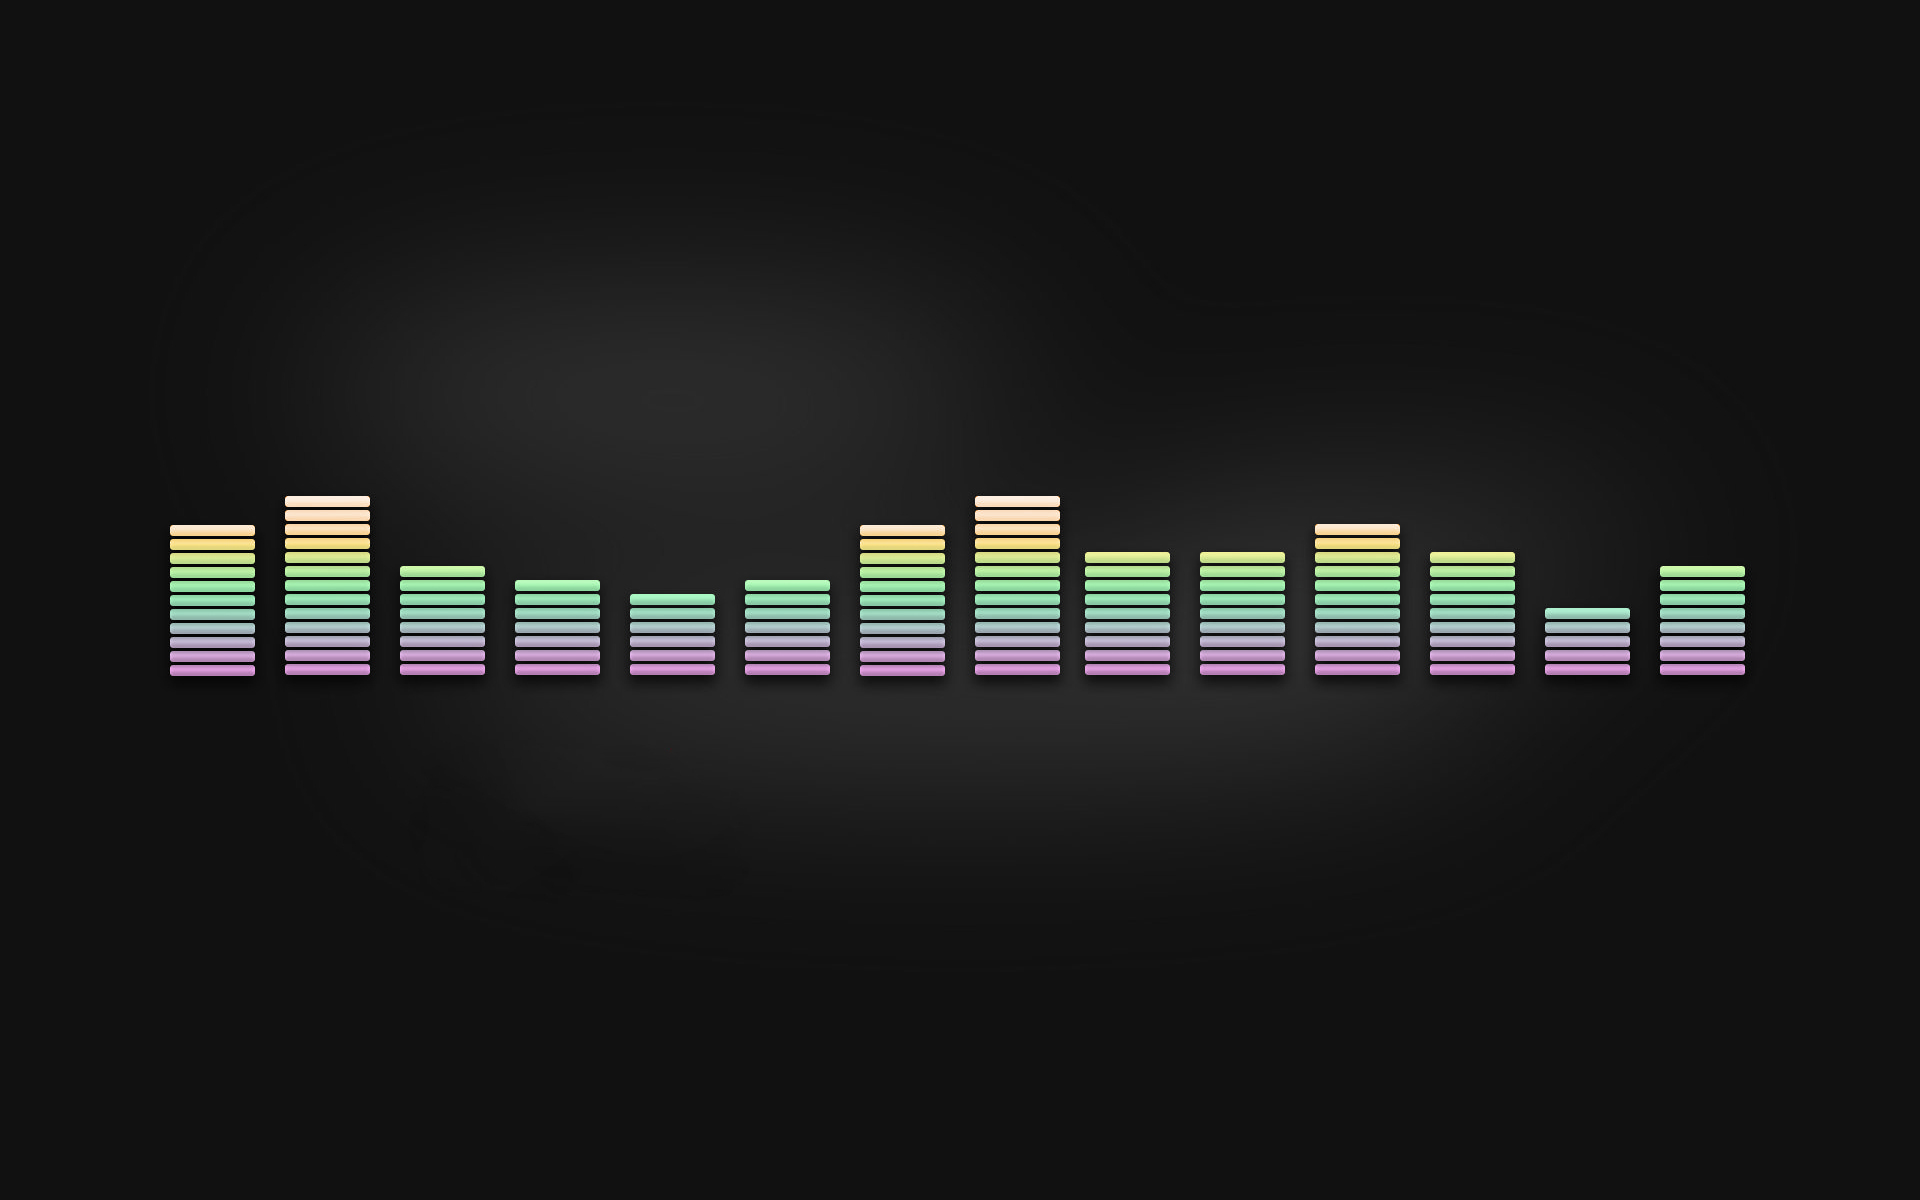 colorful equalizer wallpaper 47340